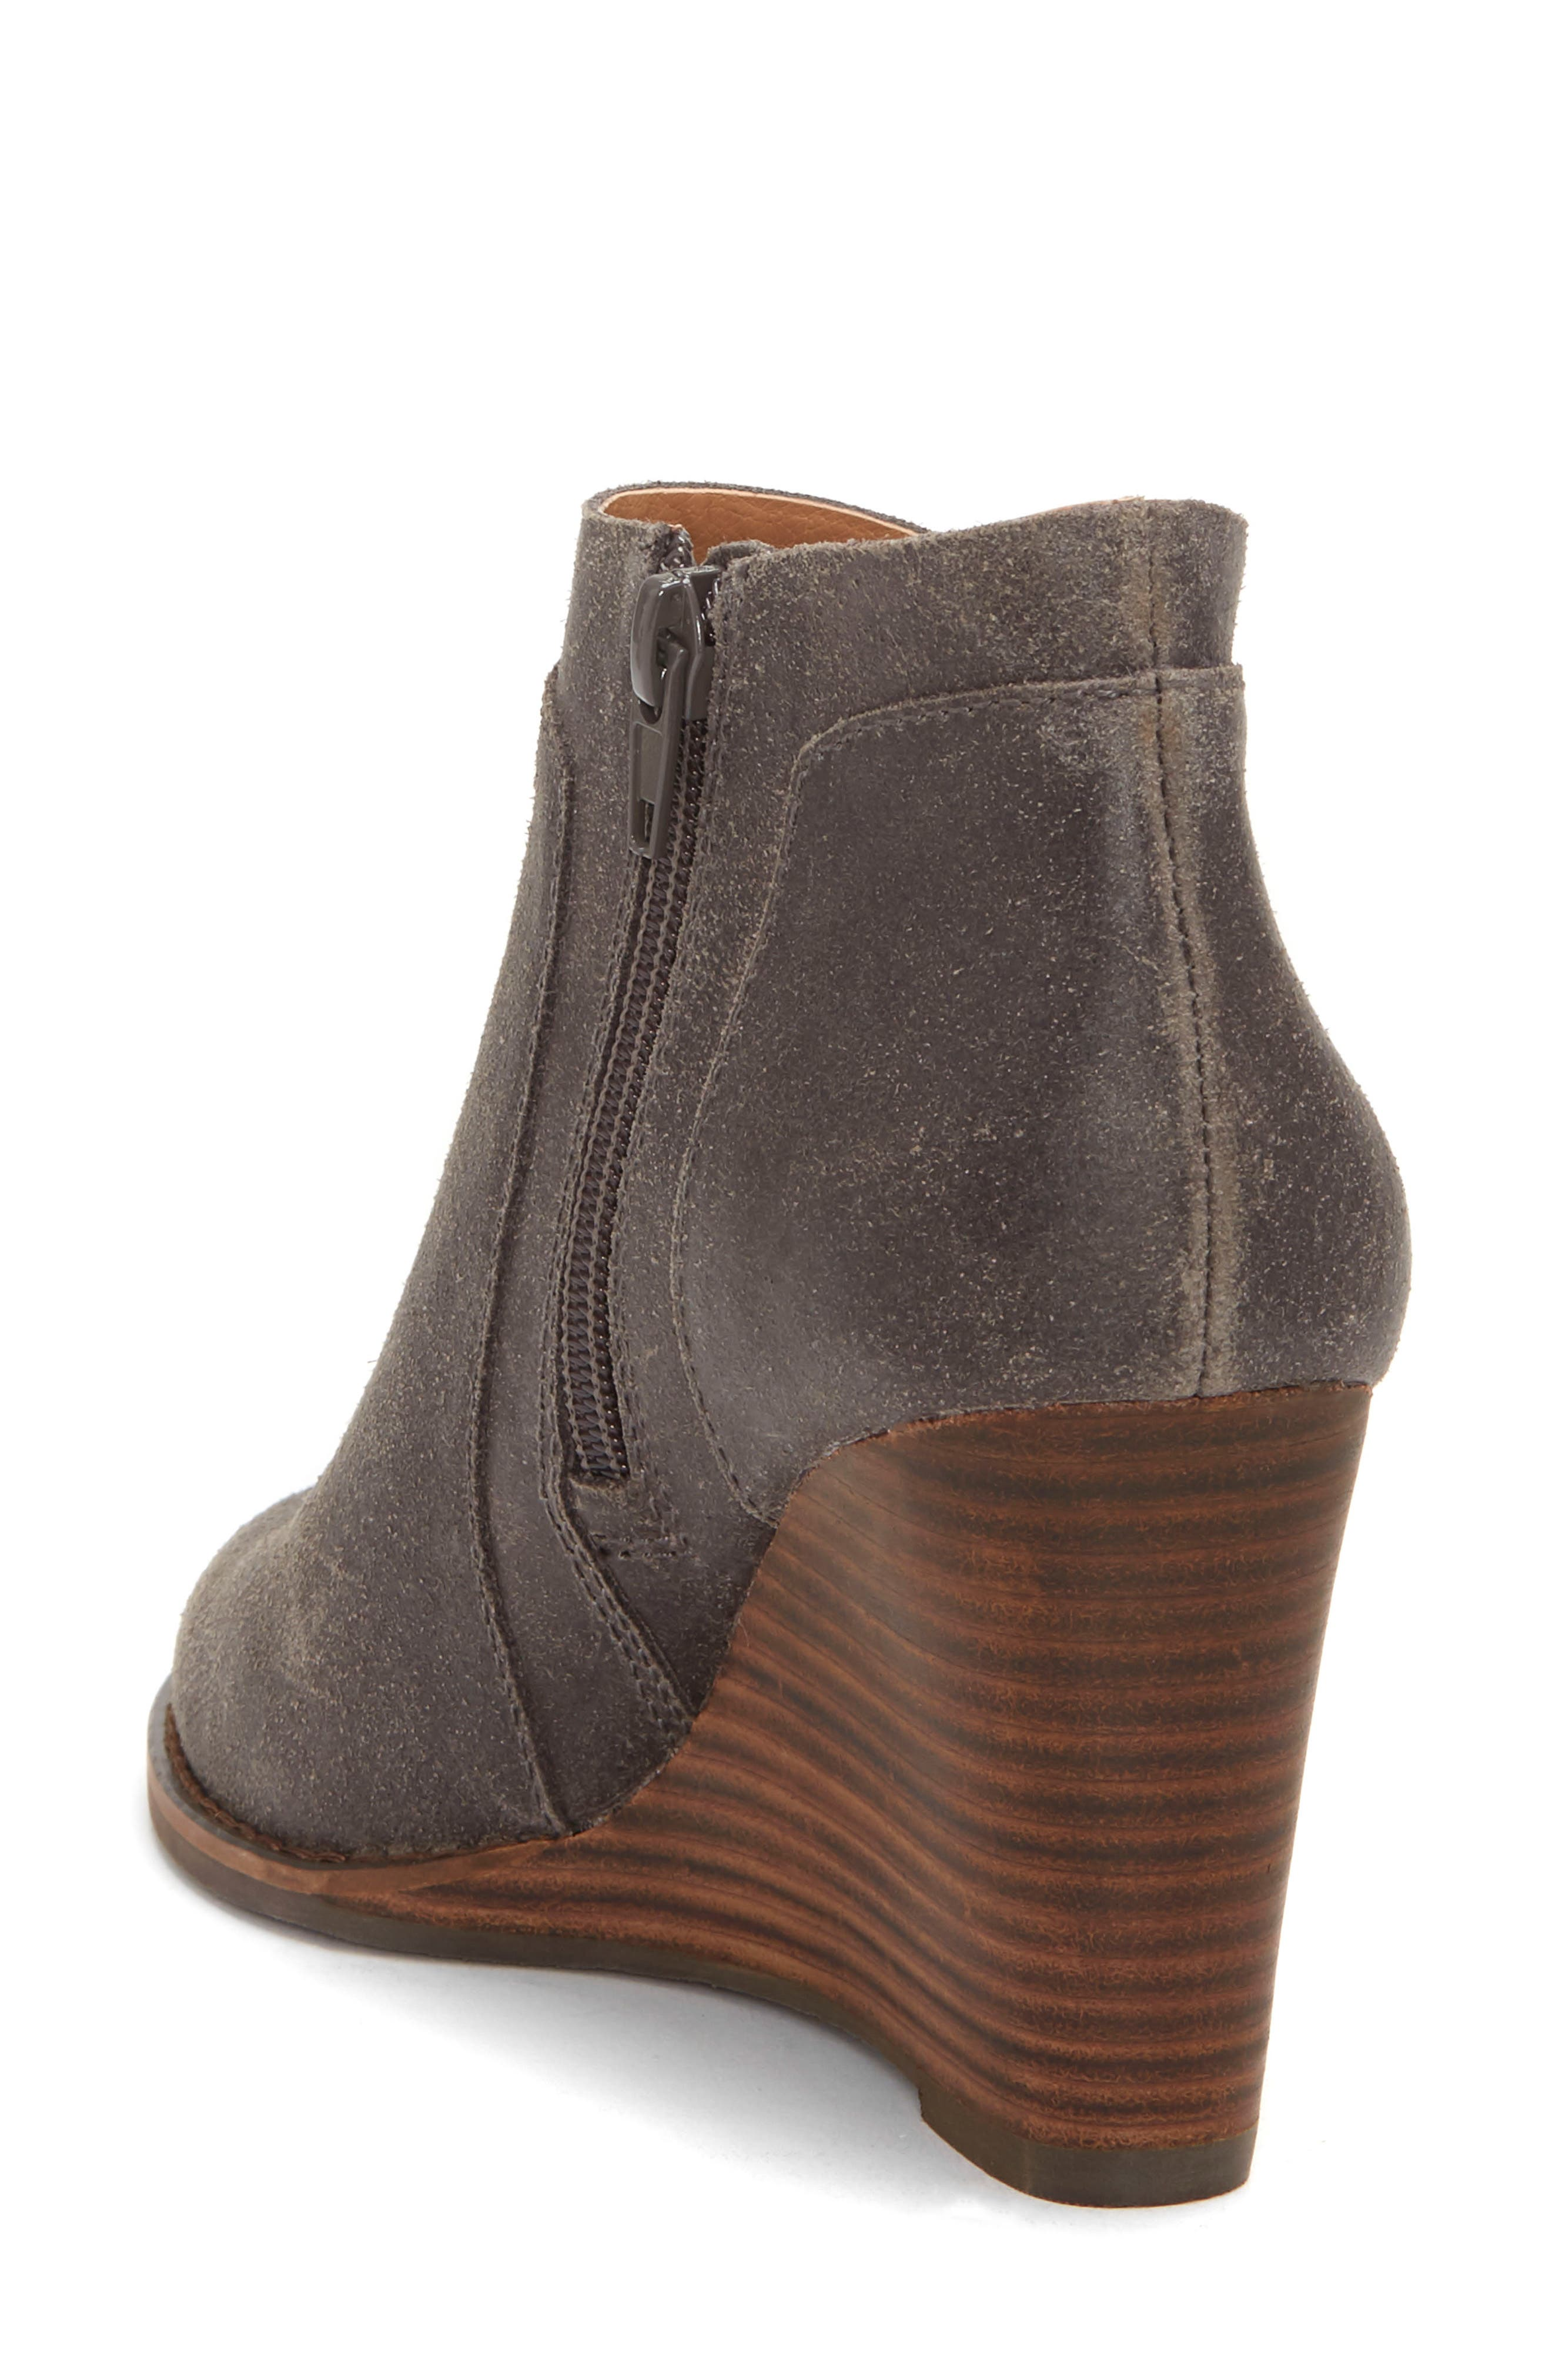 Yabba Wedge Bootie,                             Alternate thumbnail 2, color,                             STORM NUBUCK